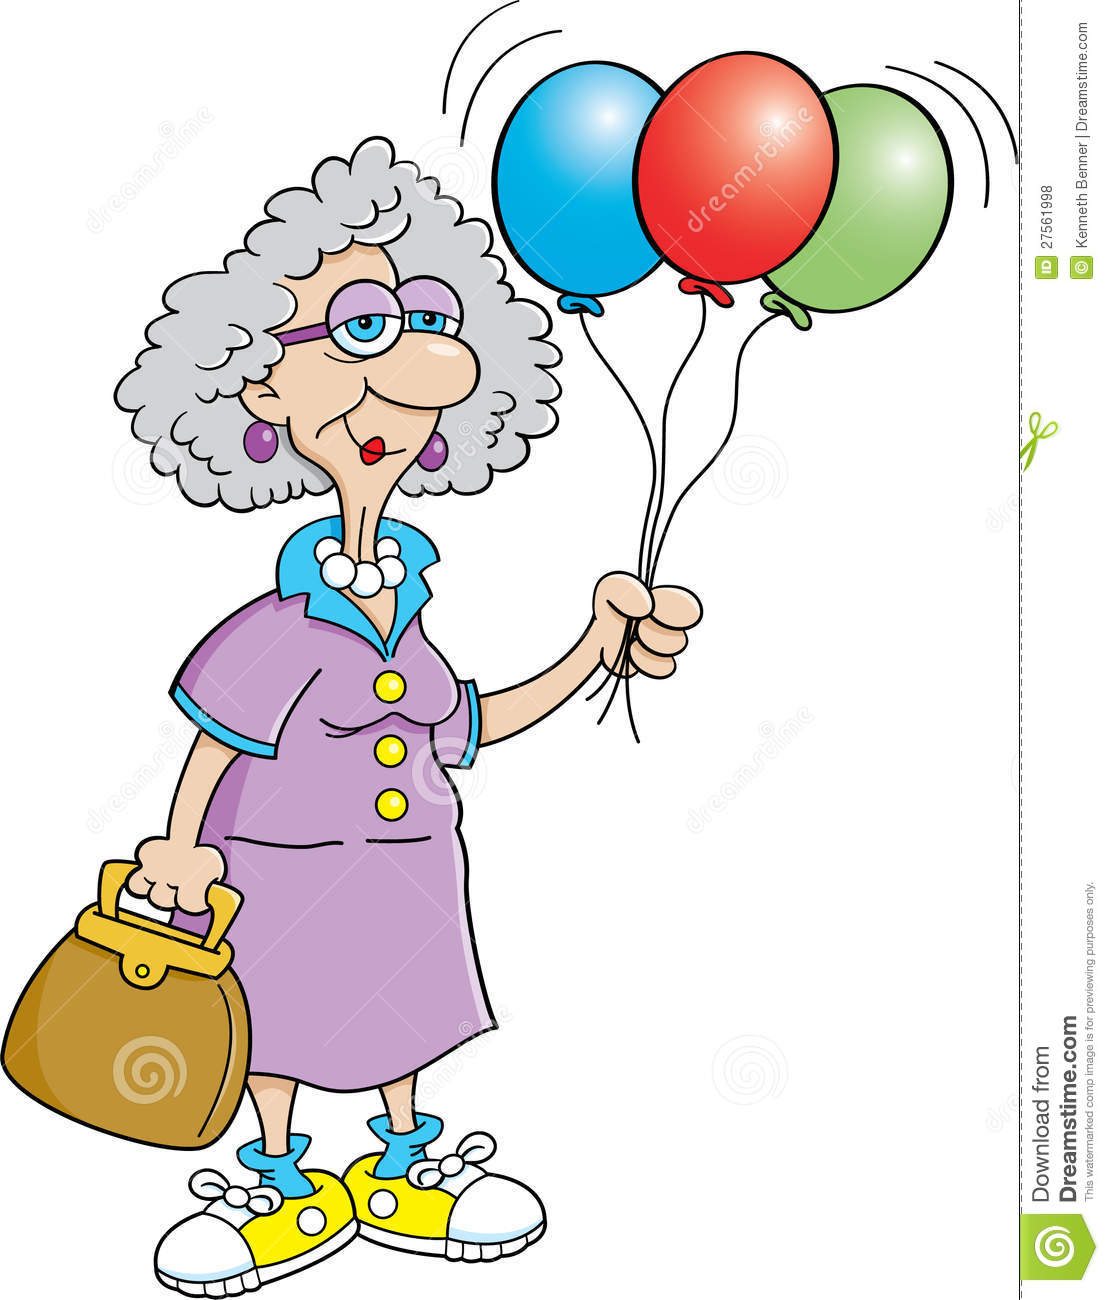 old people cartoons clipart   clipart suggest